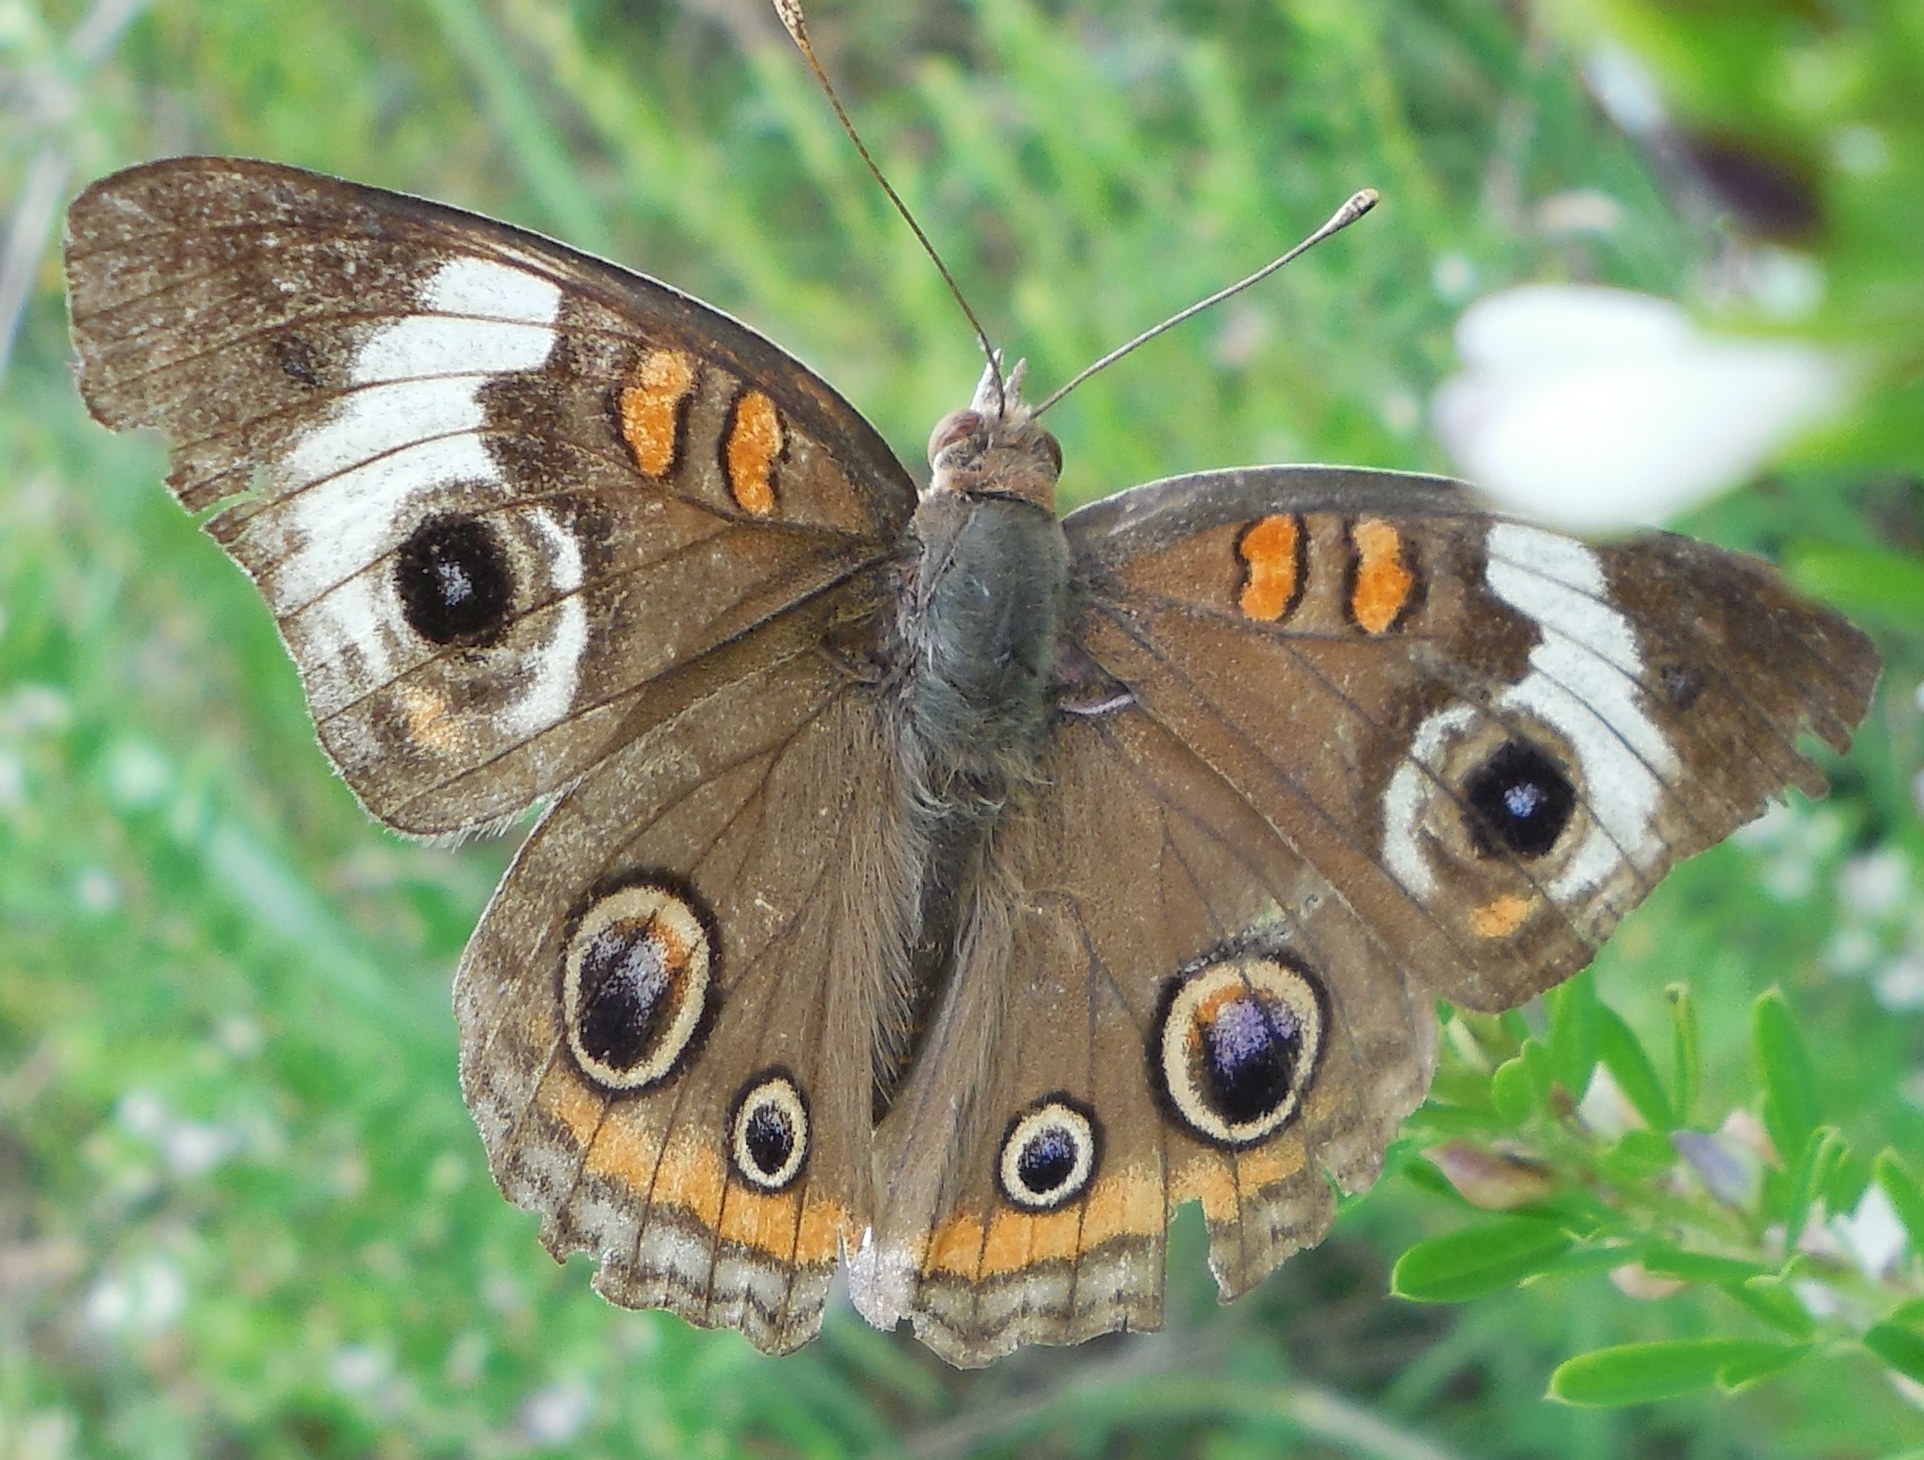 Common Buckeye Butterfly (detail) - 28 August 2013